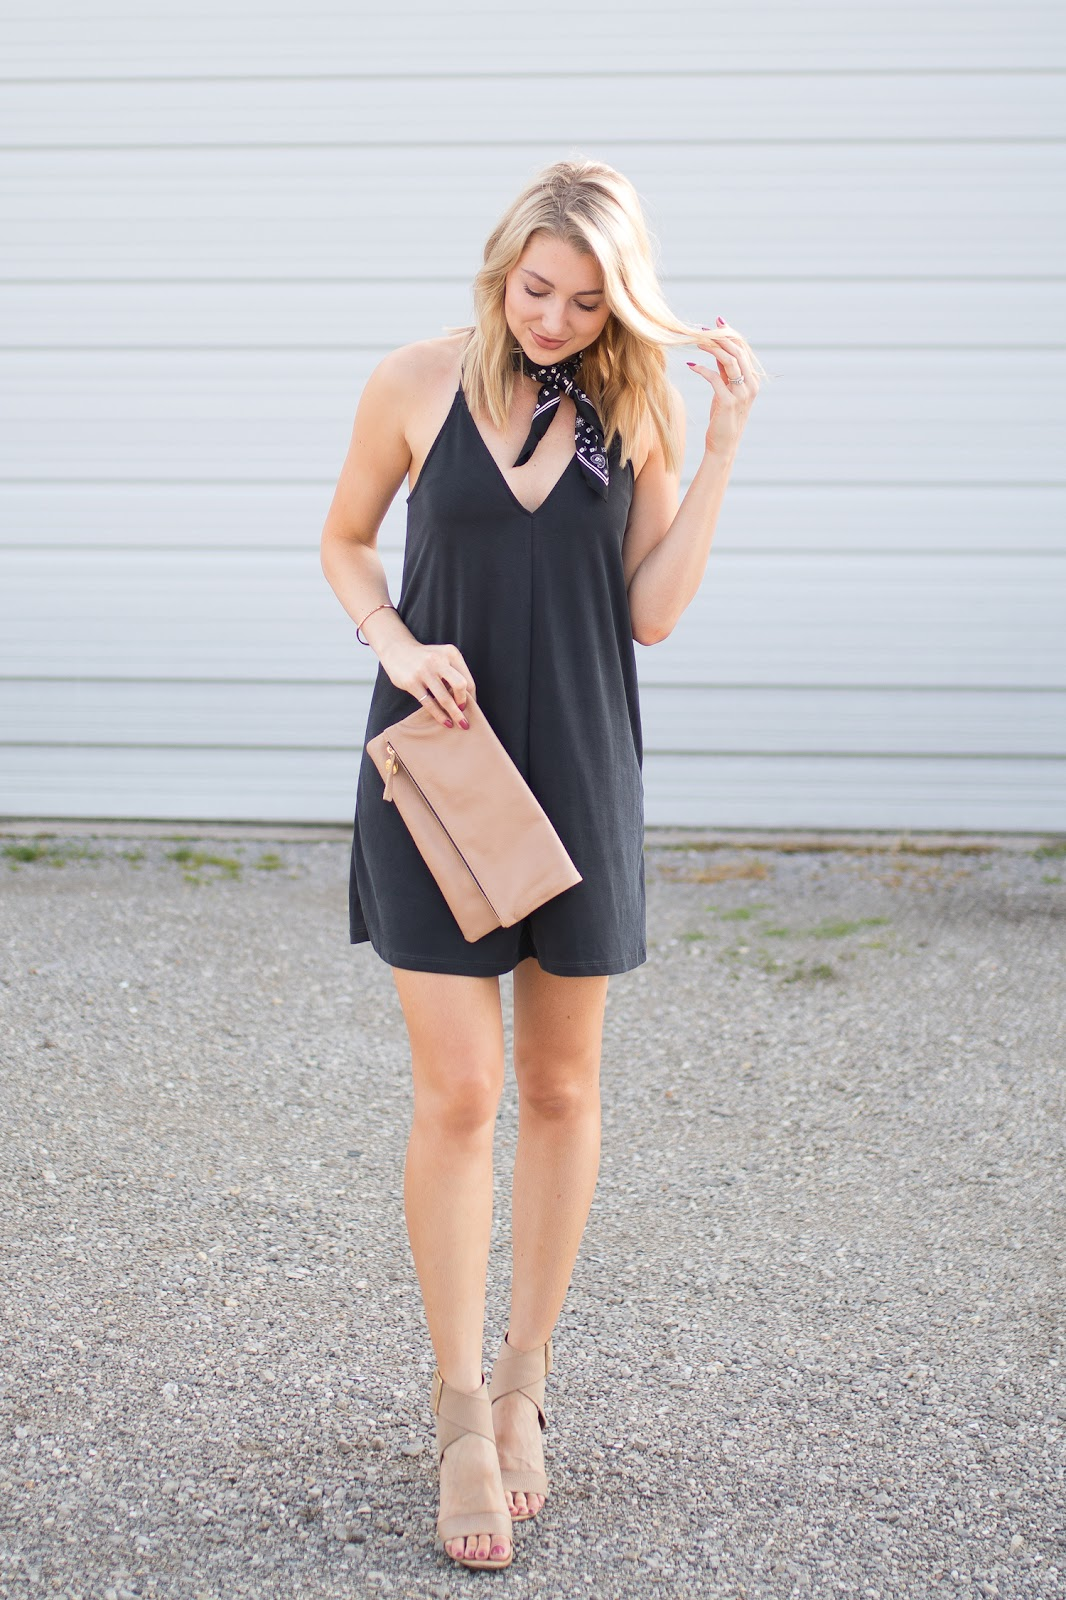 Dark gray dress with nude accessories